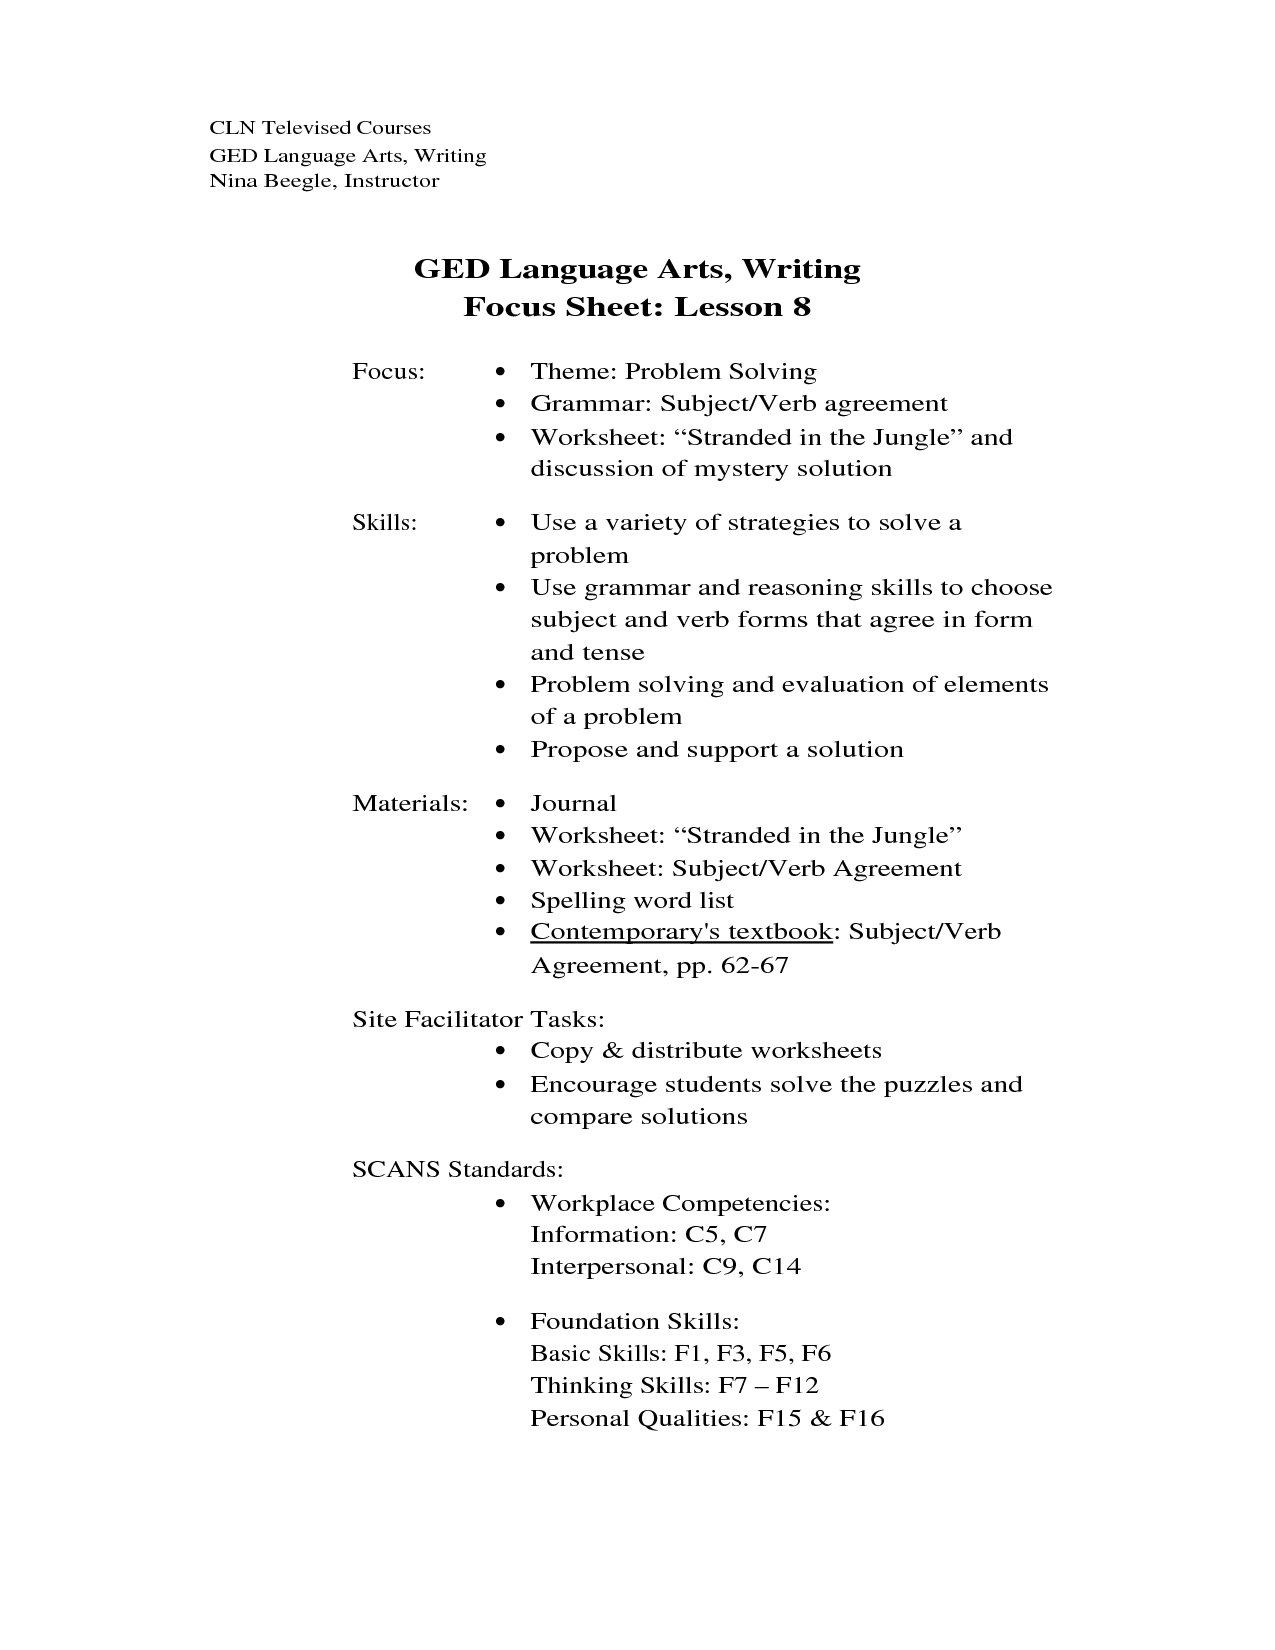 Free Printable Ged Reading Practice Test | Download Them Or Print - Free Printable Ged Study Guide 2016